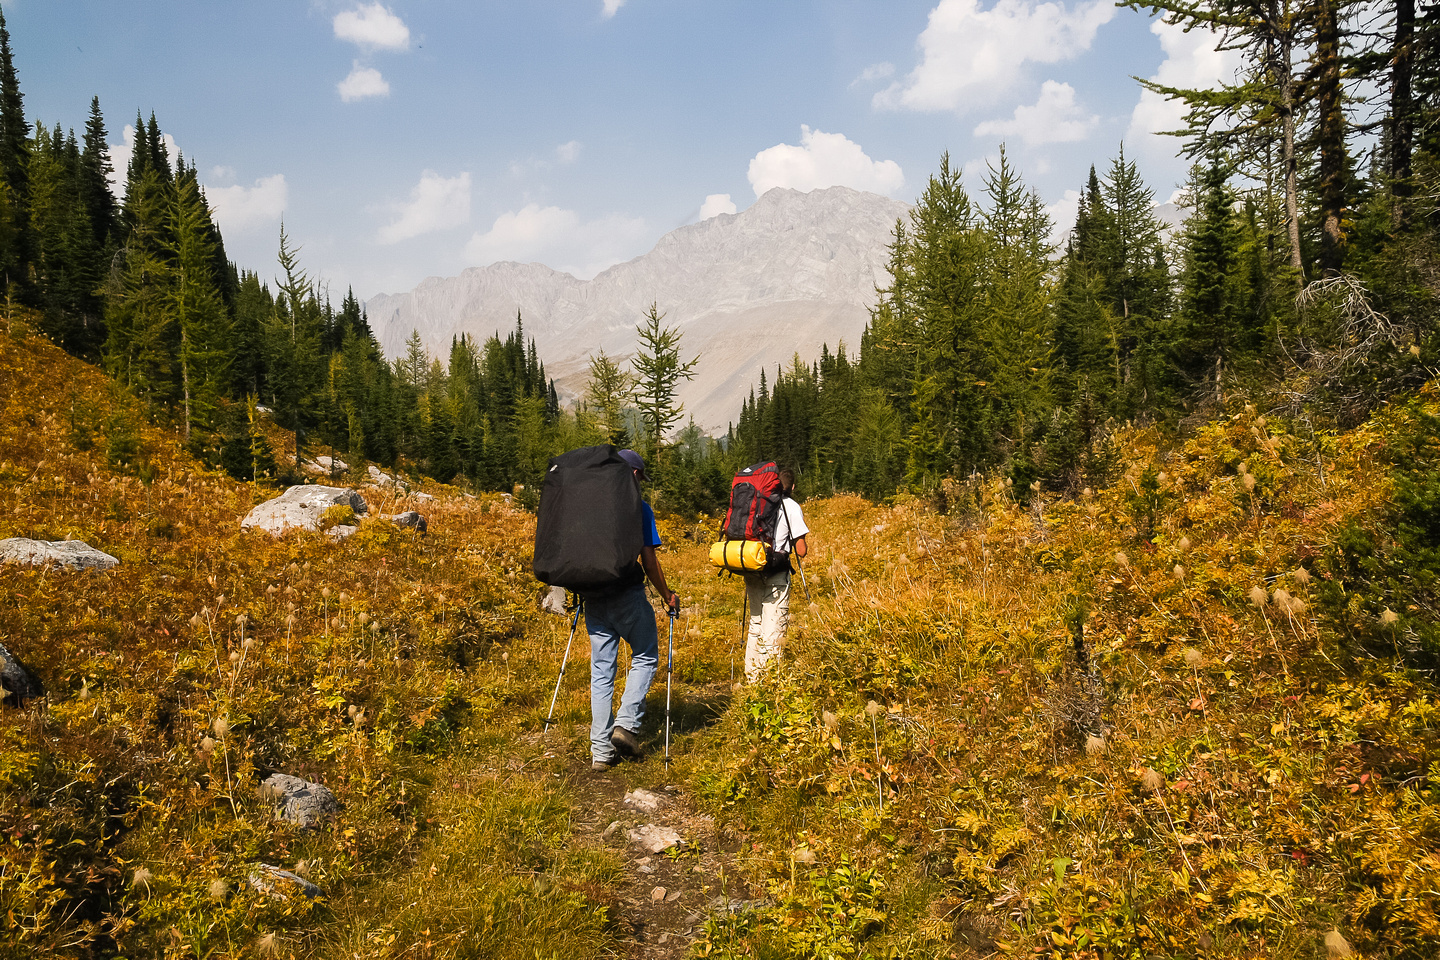 Our heavy backpacks are back on! Heading down to the main trail to Three Isle Lake.